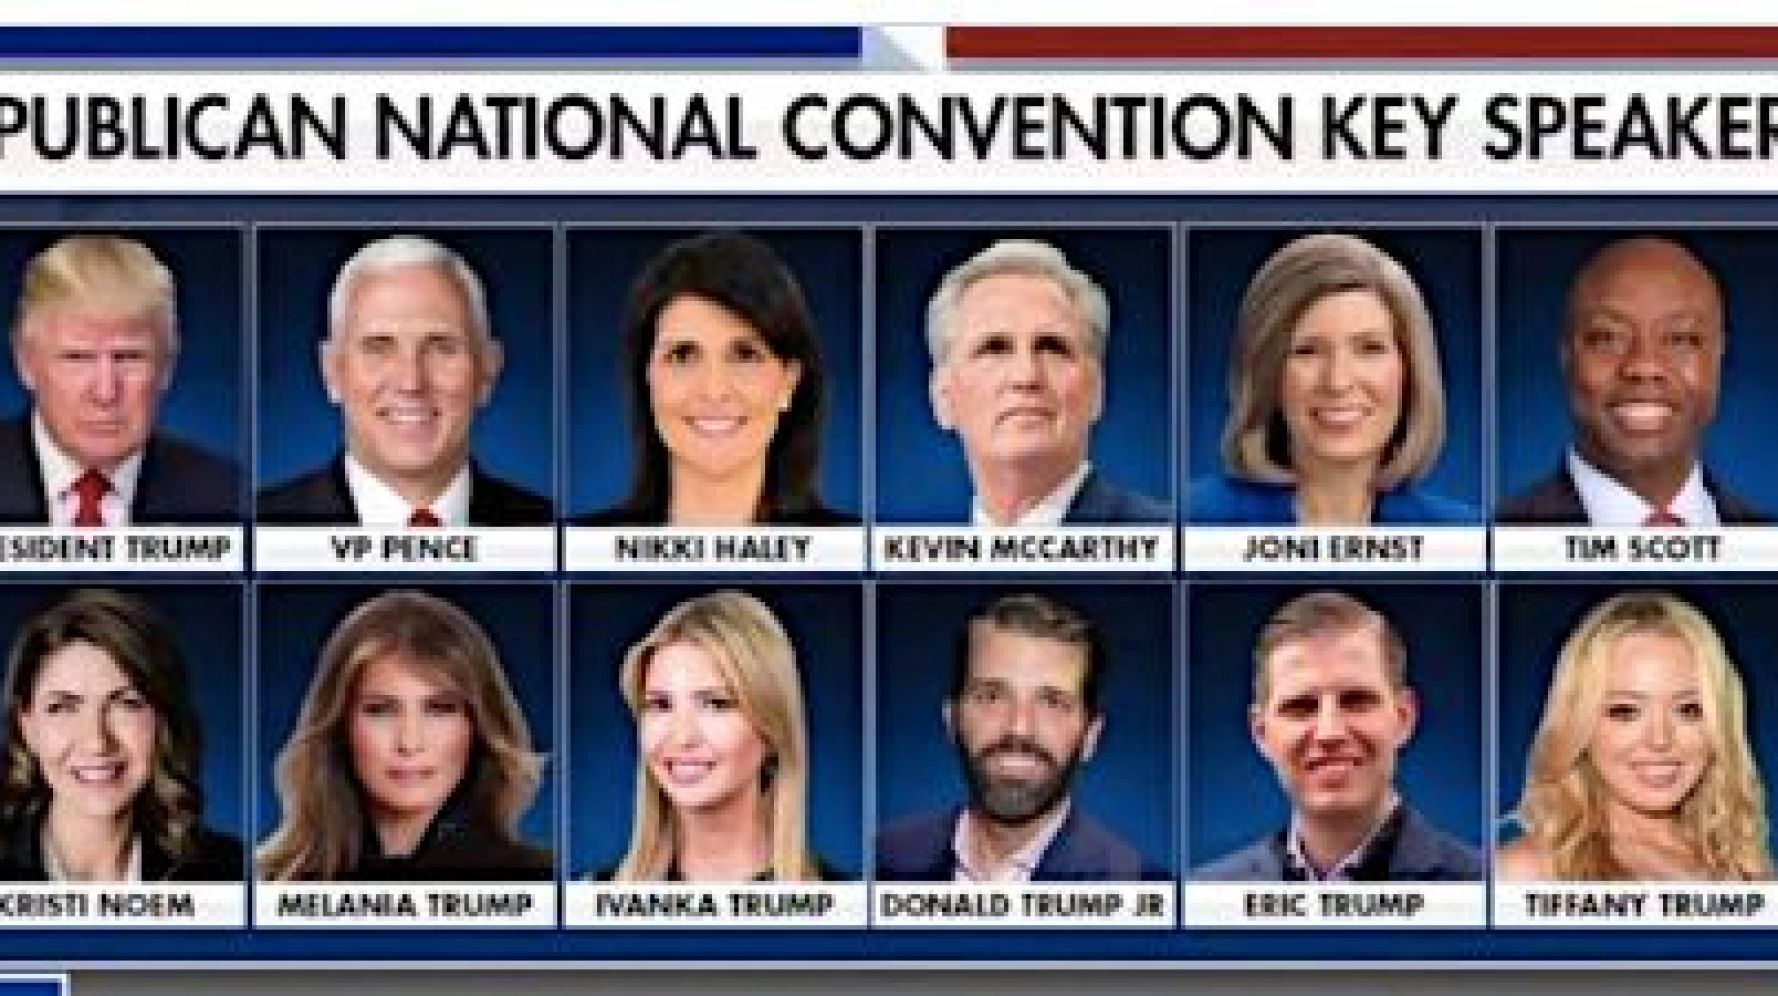 All In The Family: Half Of GOP Convention's 'Key Speakers' Are Trumps. Twitter Implodes.